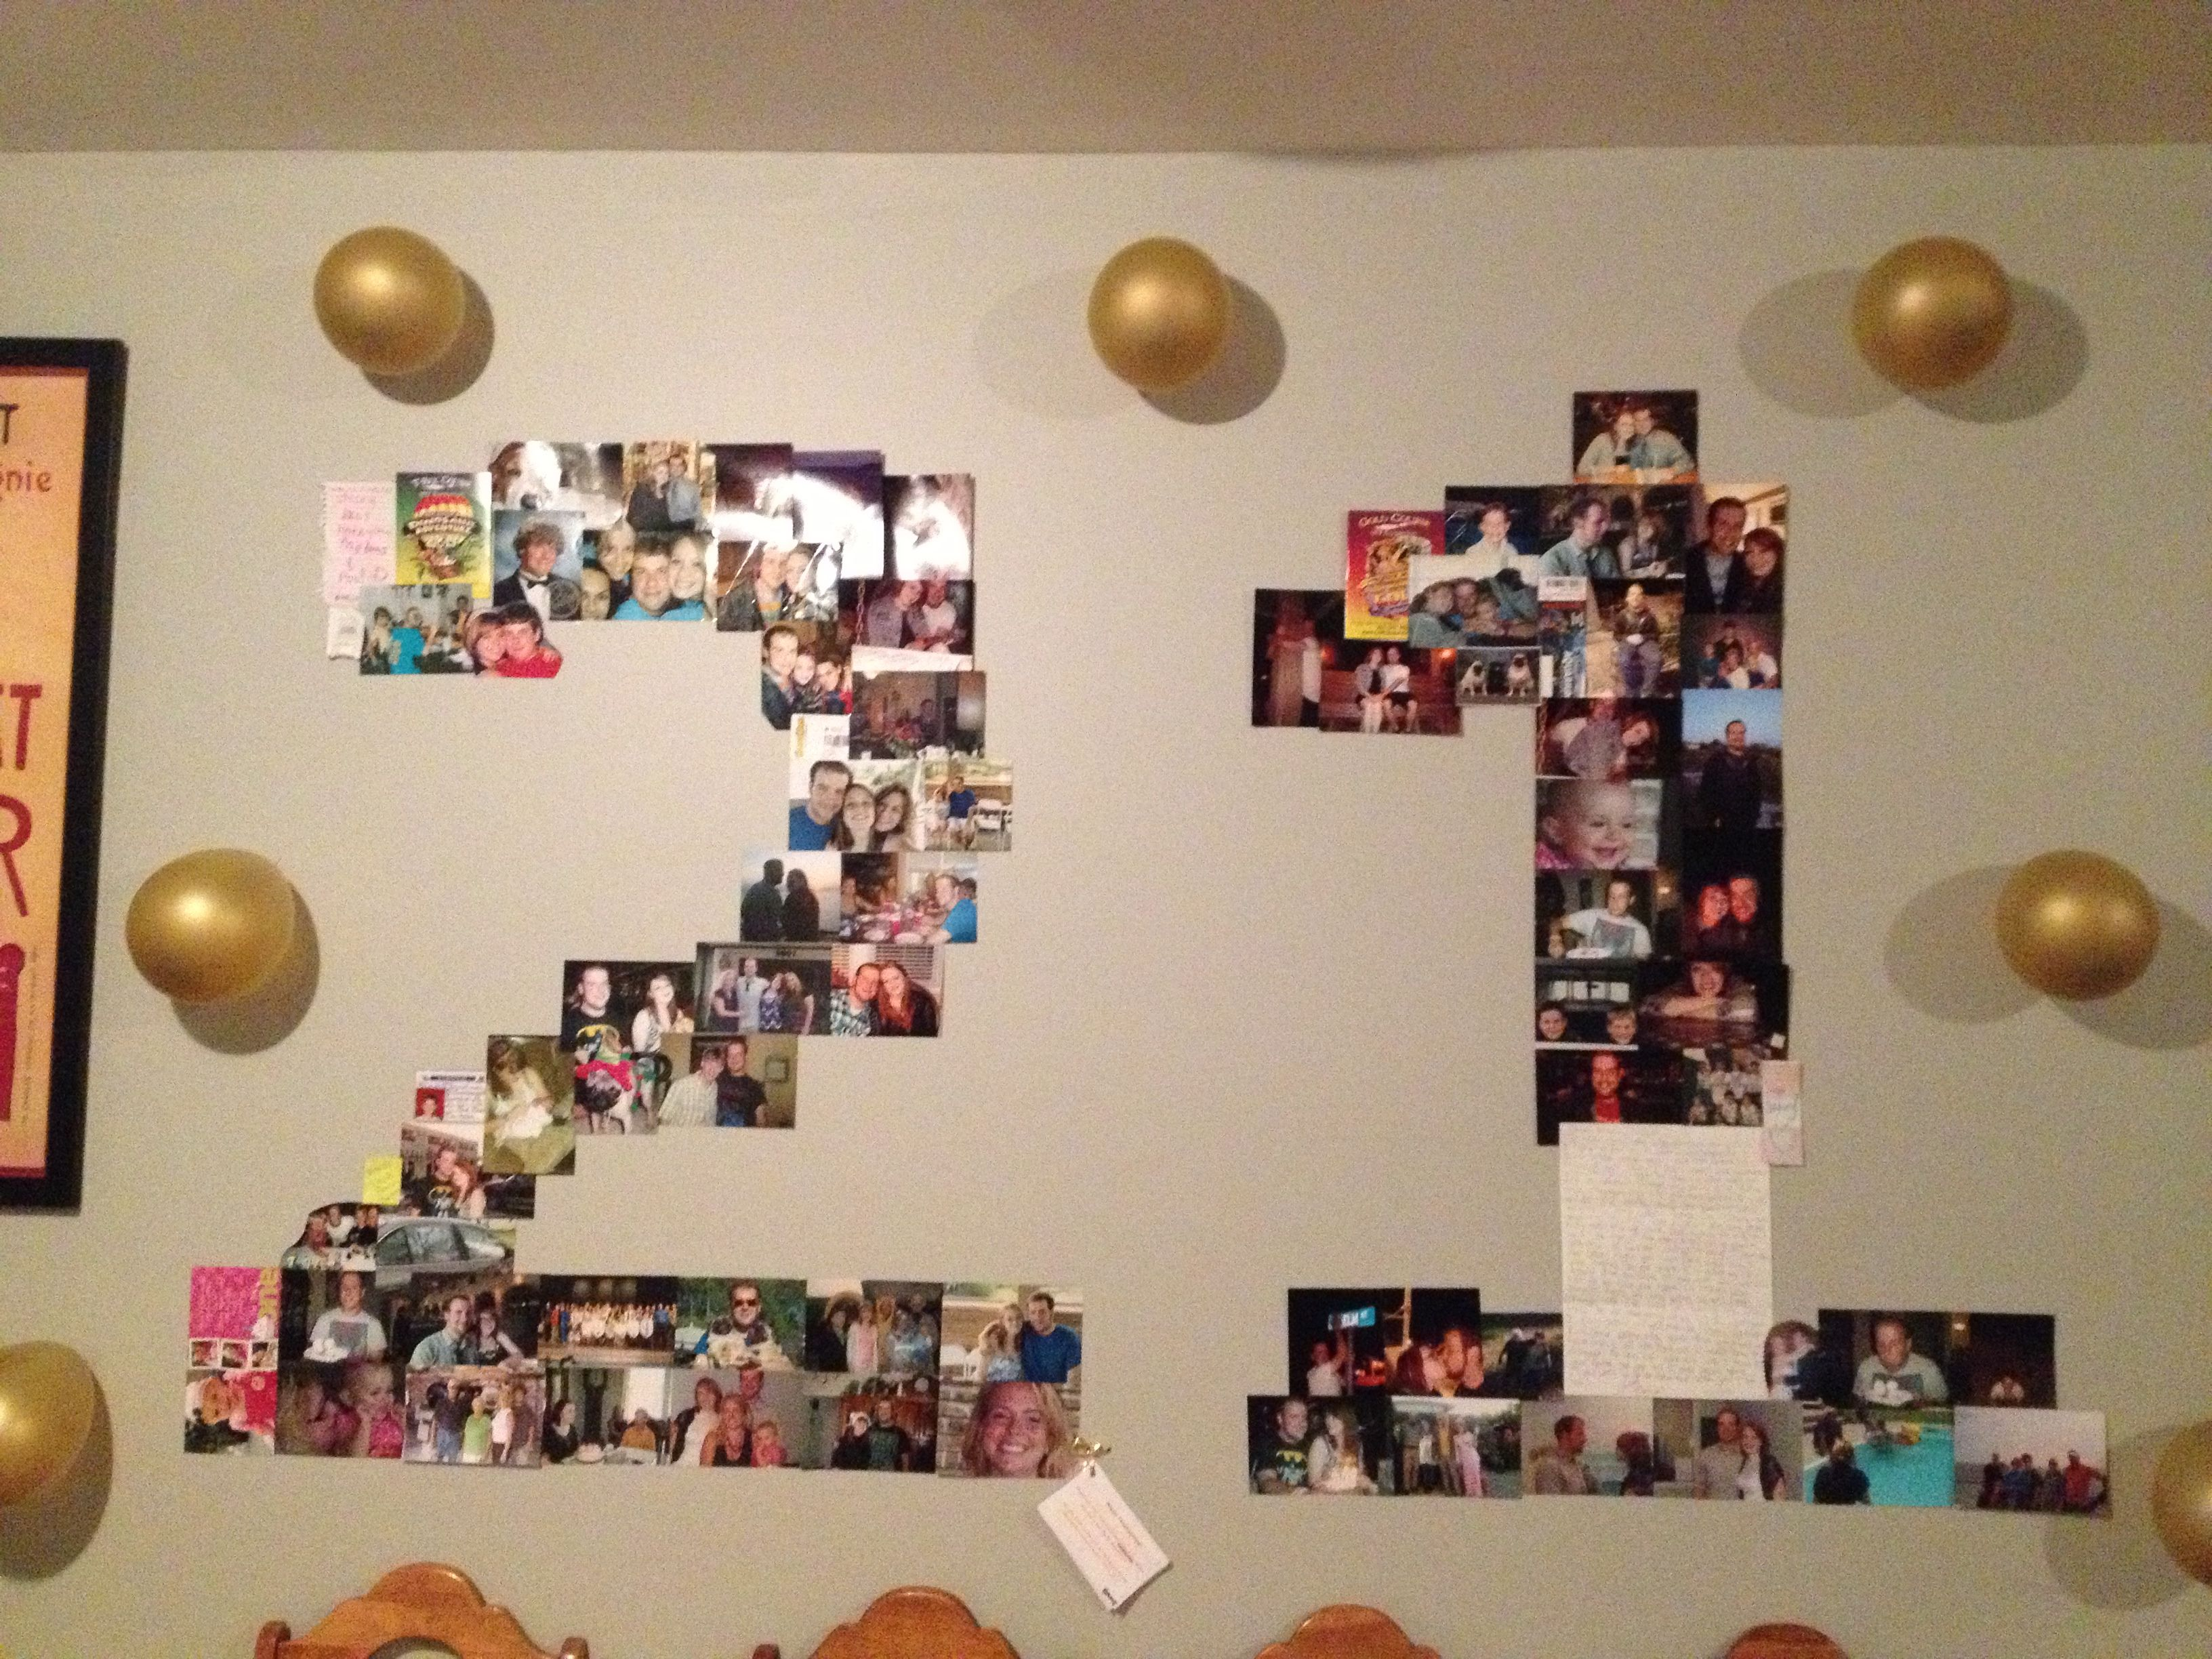 picture collage ideas for birthday party ; 0945d4abd705bccd0f2515c2b2761d2c